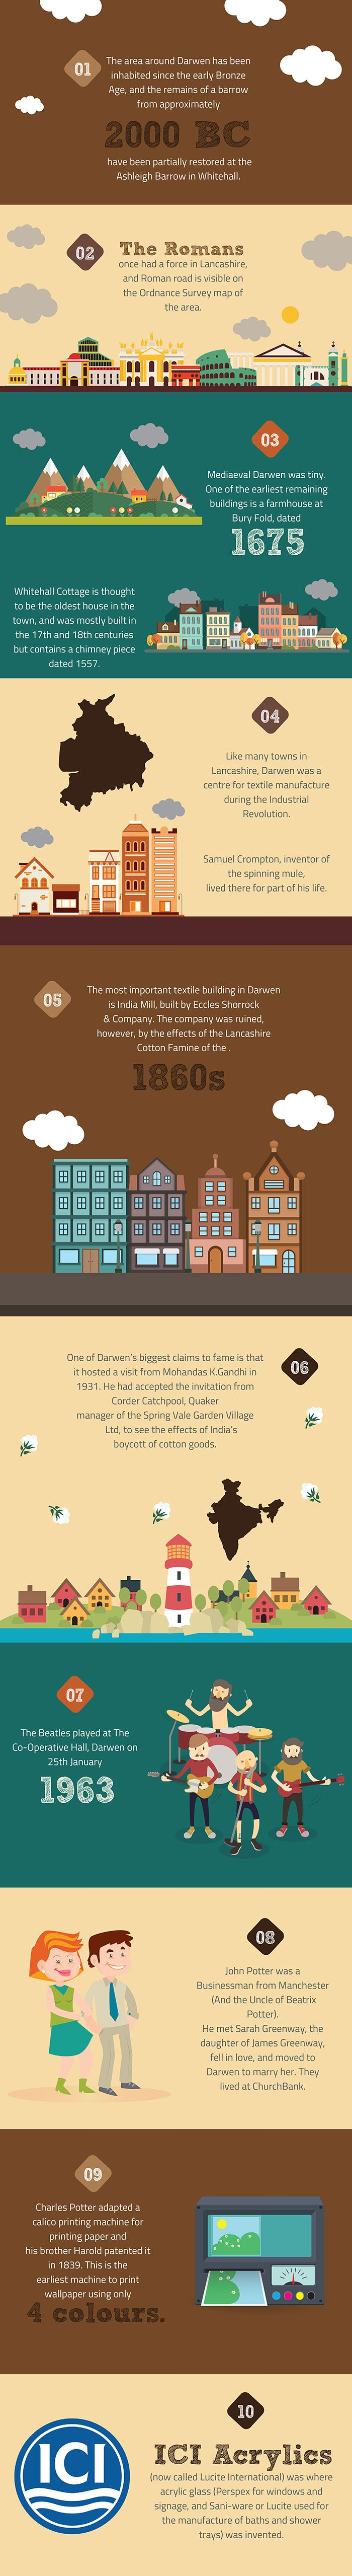 The town of Darwen is rich in history and its beginnings go back to medieval times. This informative infographic by CanvasDesign shows a timeline of some of Darwen's most iconic events. From Beatrix Potter to Gandhi visiting, Darwen has it all.